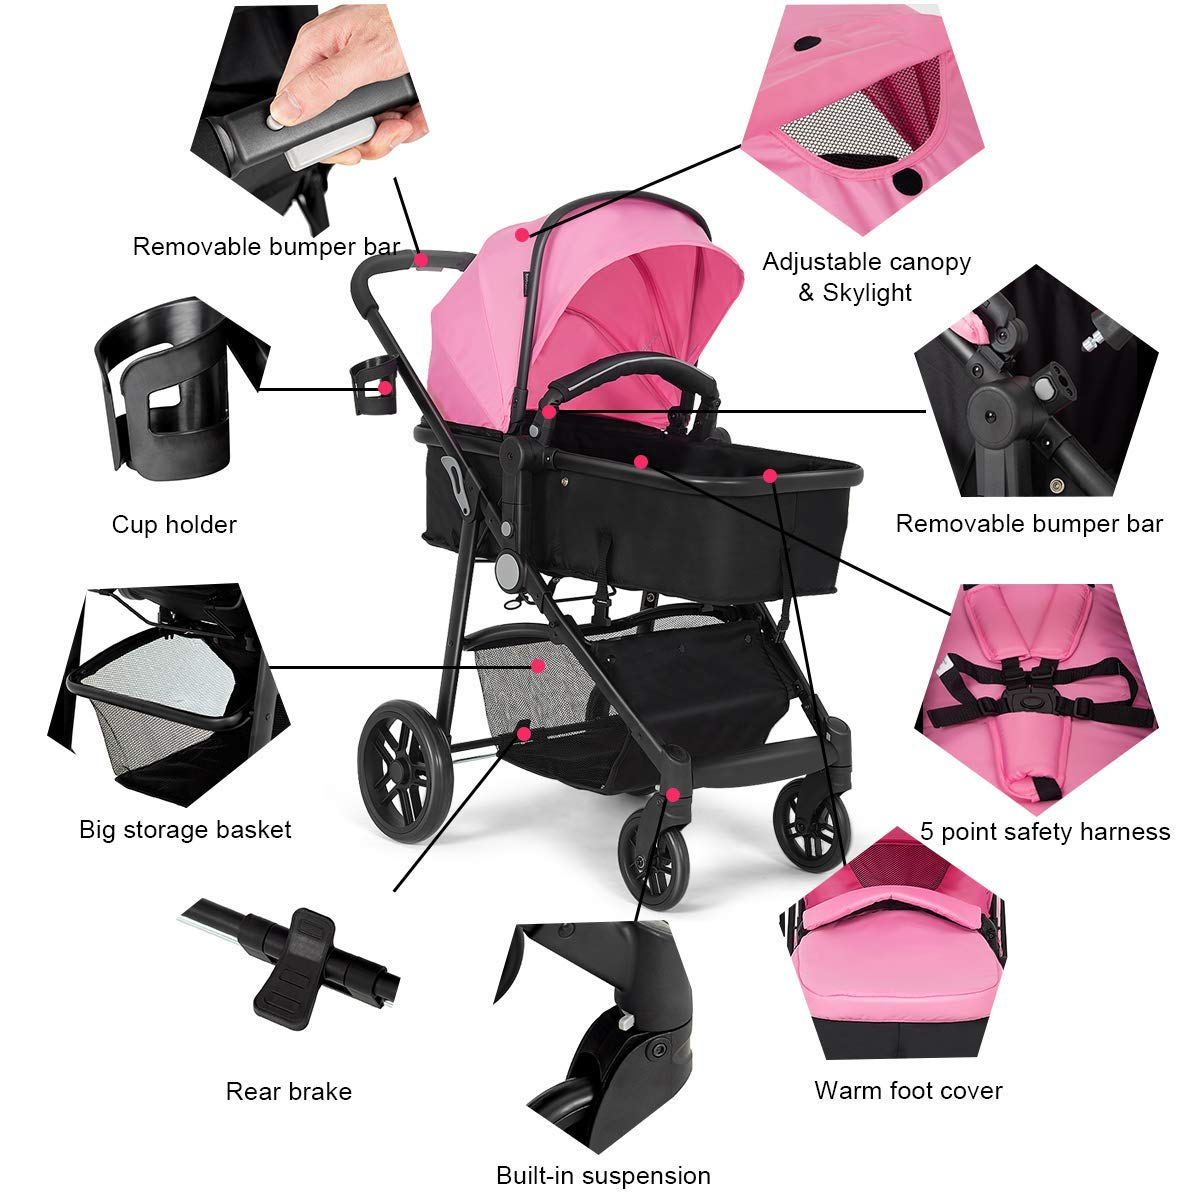 Costzon Baby Stroller, 2 in 1 Convertible Carriage Bassinet to Stroller, Pushchair with Foot Cover, Cup Holder, Large Storage Space, Wheels Suspension, 5-Point Harness (Pink Color) by Costzon (Image #4)